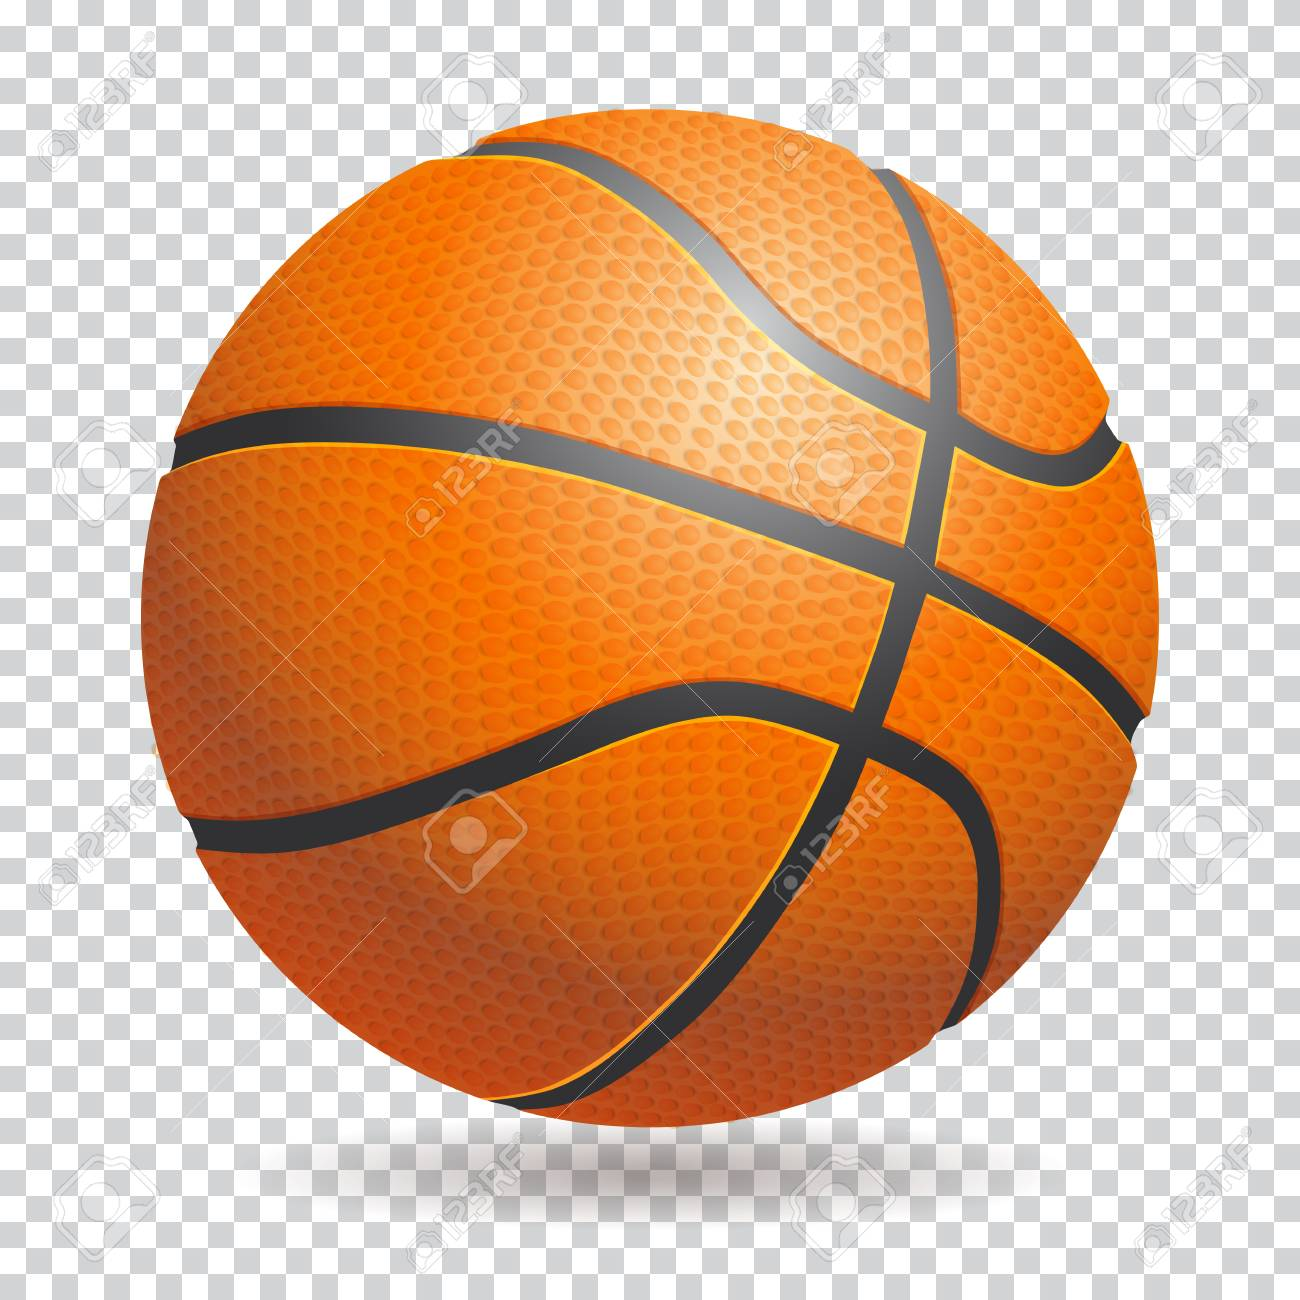 Vector 3d Basketball Isolated Ball On Transparent Background Royalty Free Cliparts Vectors And Stock Illustration Image 81916496